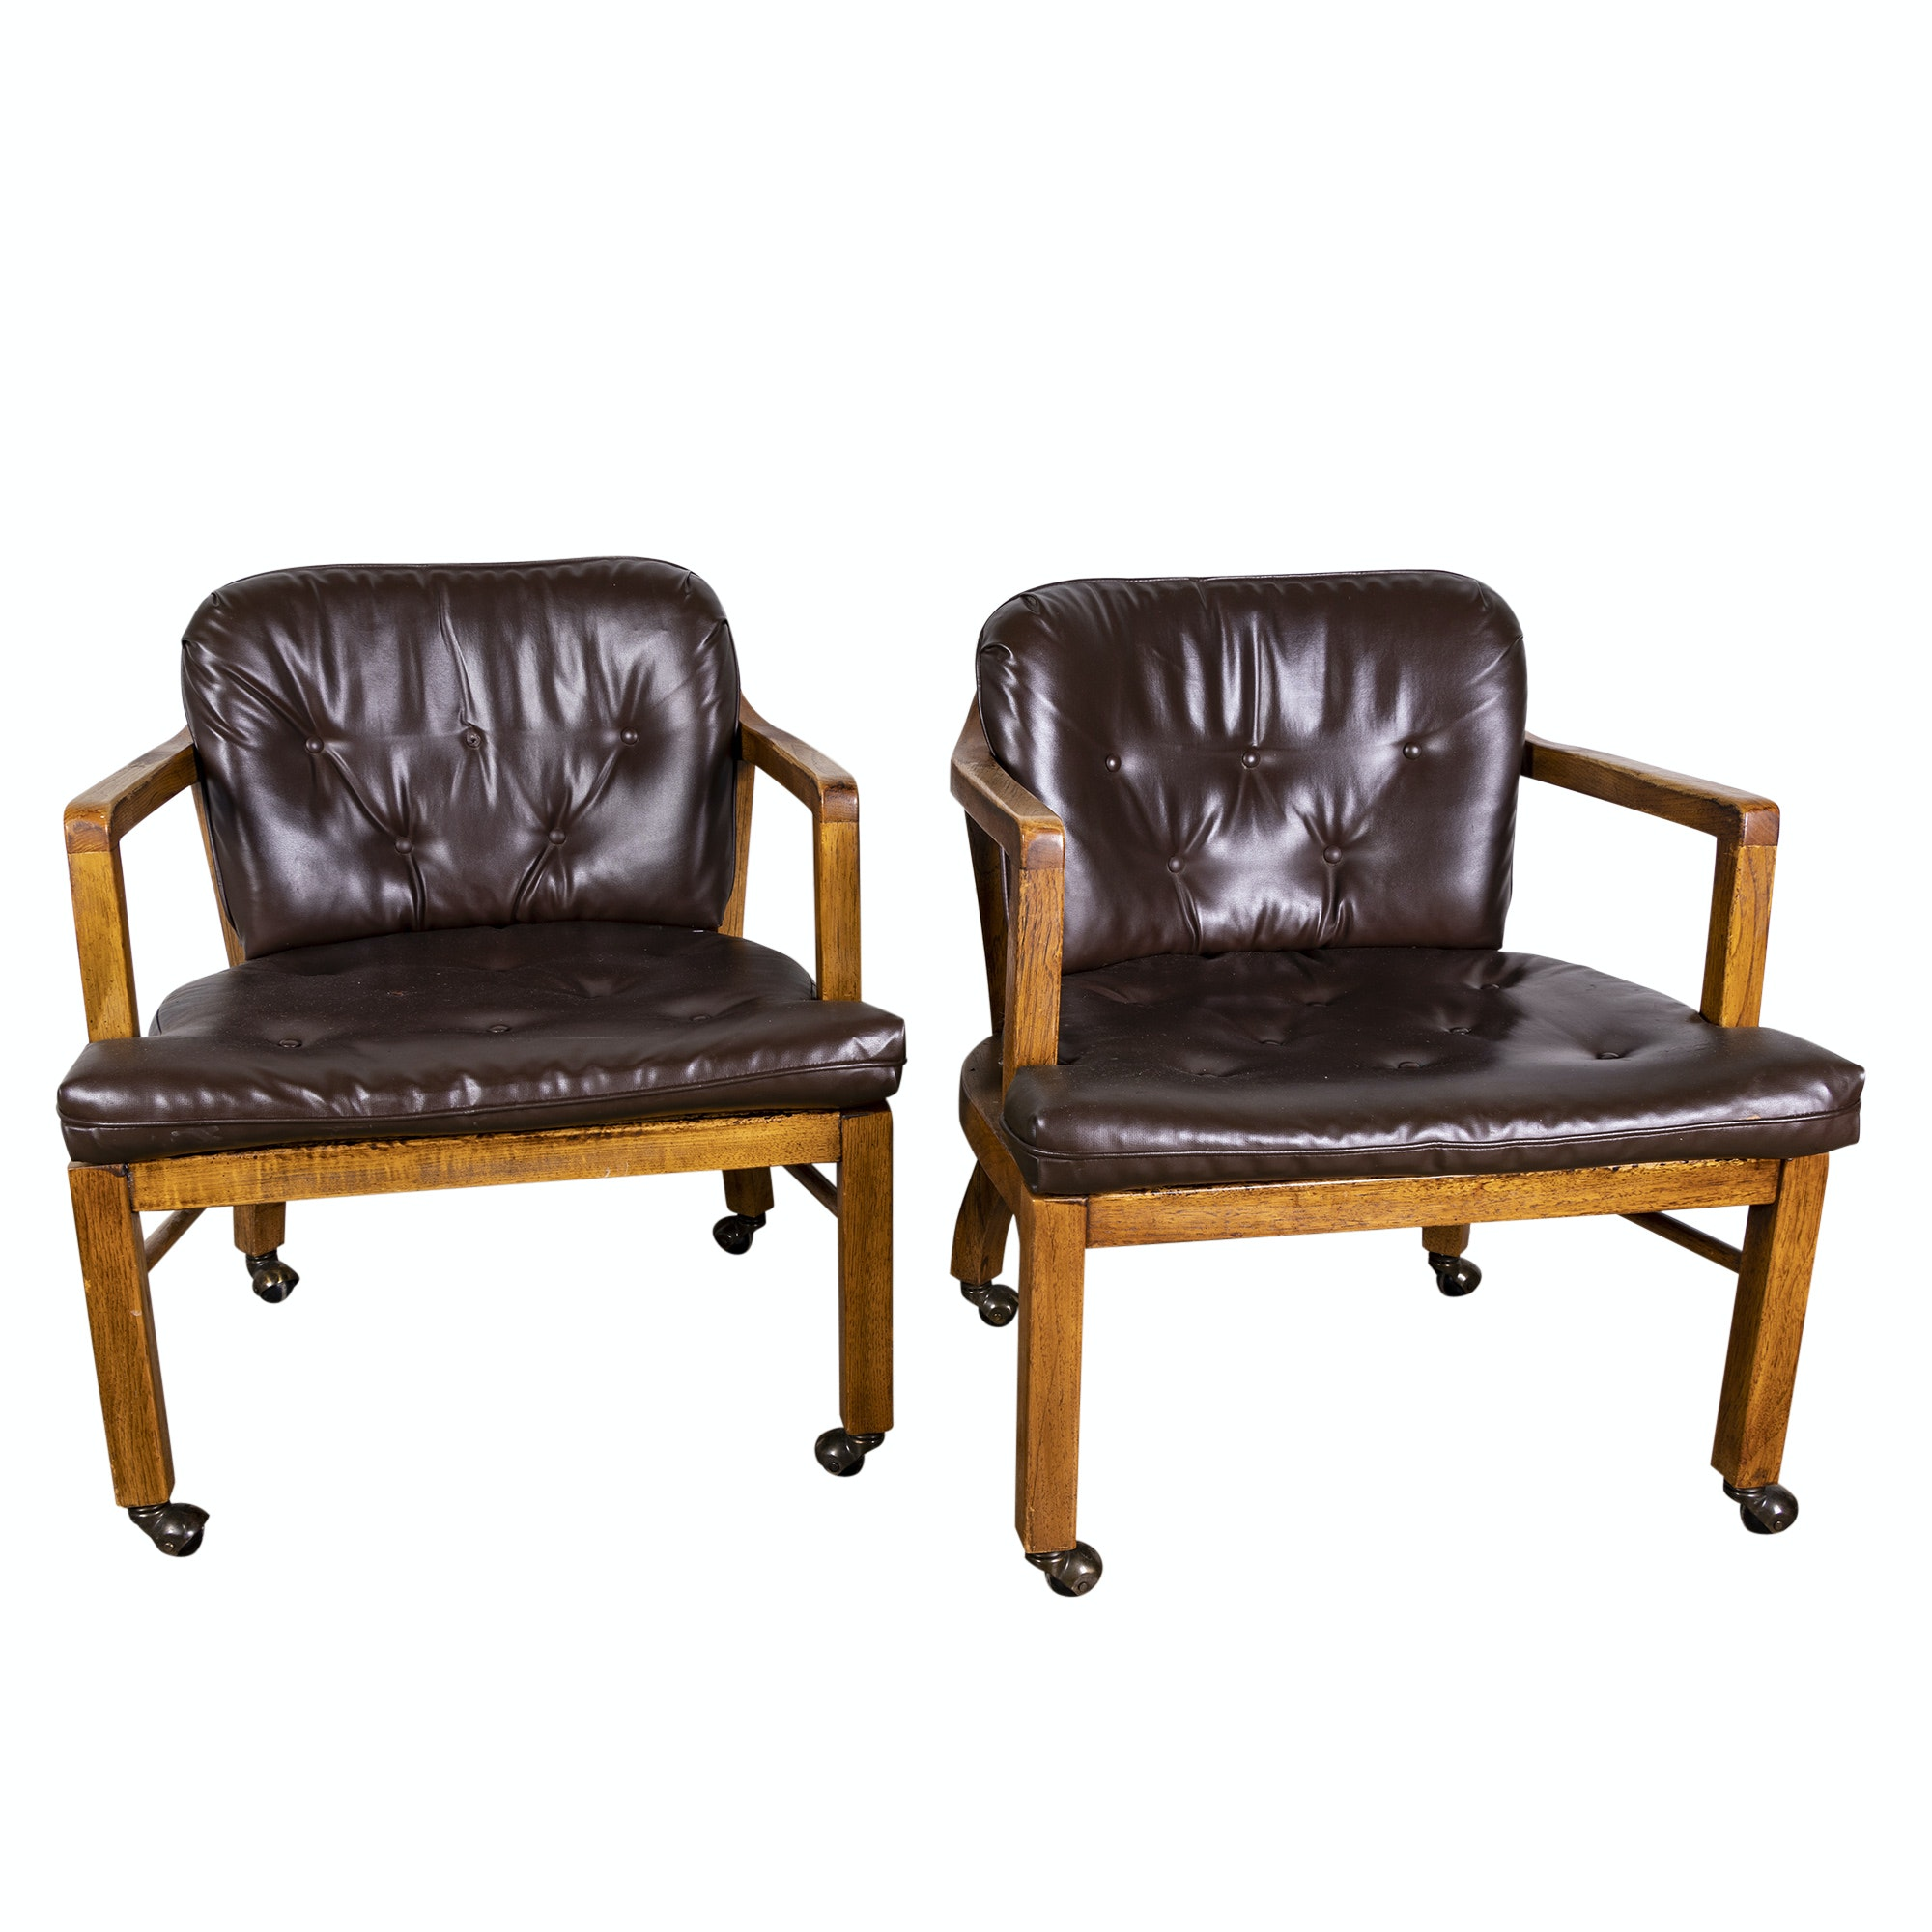 Oak Open Arm Tub Chairs on Casters, Mid-20th Century